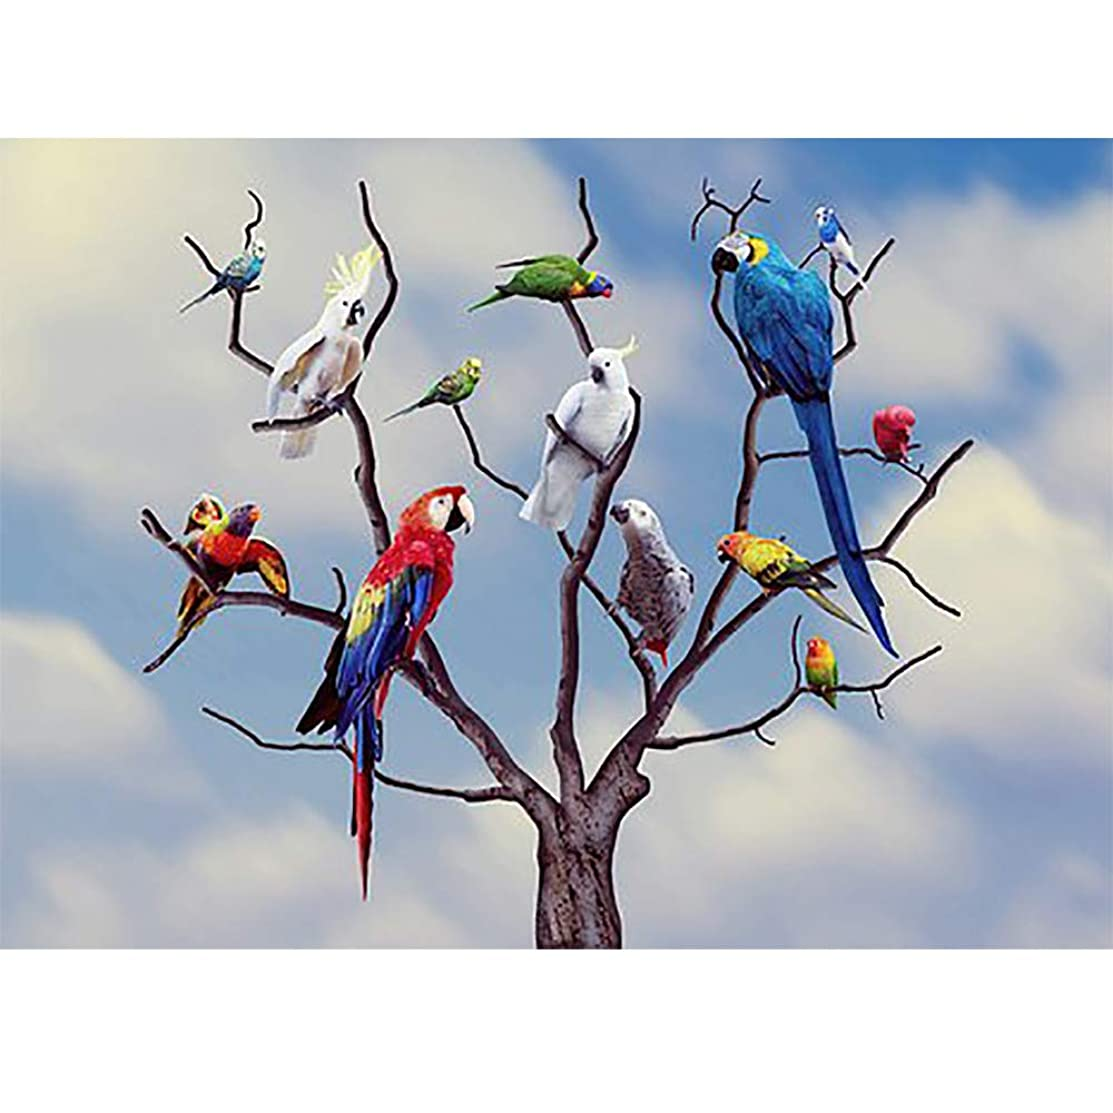 DIY 5D Diamond Painting Kit, Seaintheson Colorful Birds Full Drill Rhinestone Arts Craft Canvas Embroidery Cross Stitch Home Wall Decor for Kids Adult Beginner 30X40CM